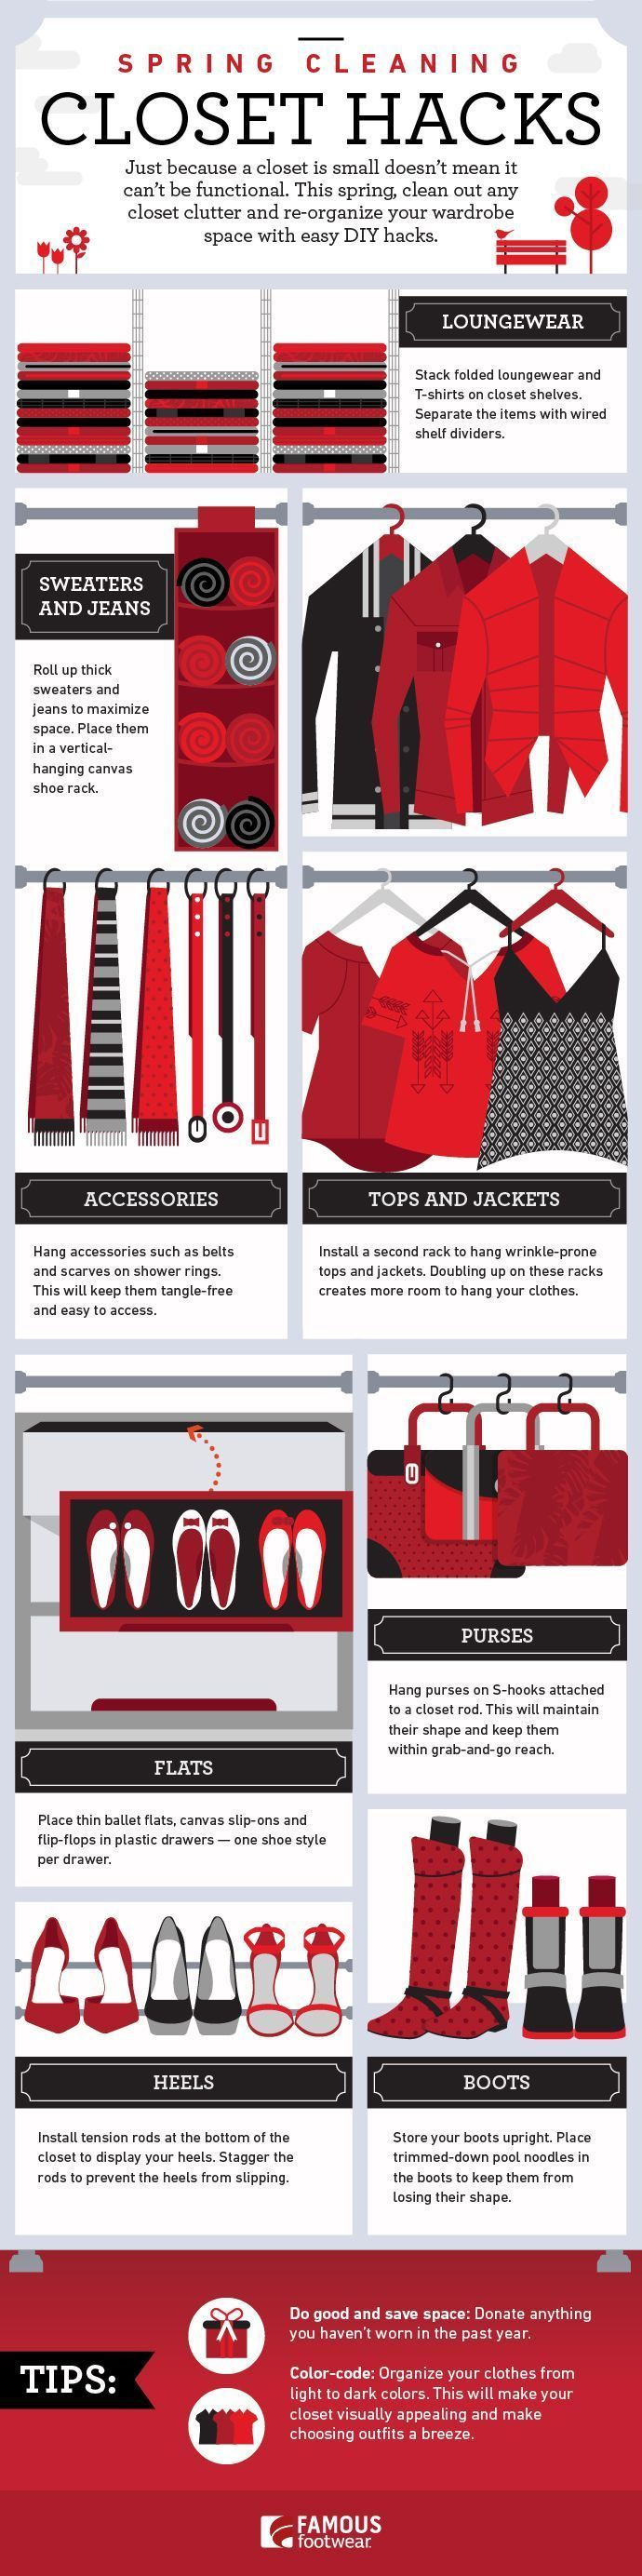 For many, spring cleaning is a time to eliminate clutter, put away the winter clothes, and get the closet ready for warmer weather. While sometimes that might mean getting rid of a few things, what about storing all the stuff you want to keep? If you're someone who can't part with clothes, accessories and shoes, you'll love these spring cleaning closet hacks we've come up with, organized (like your closet soon will be!) in this helpful guide. #clutterhacks